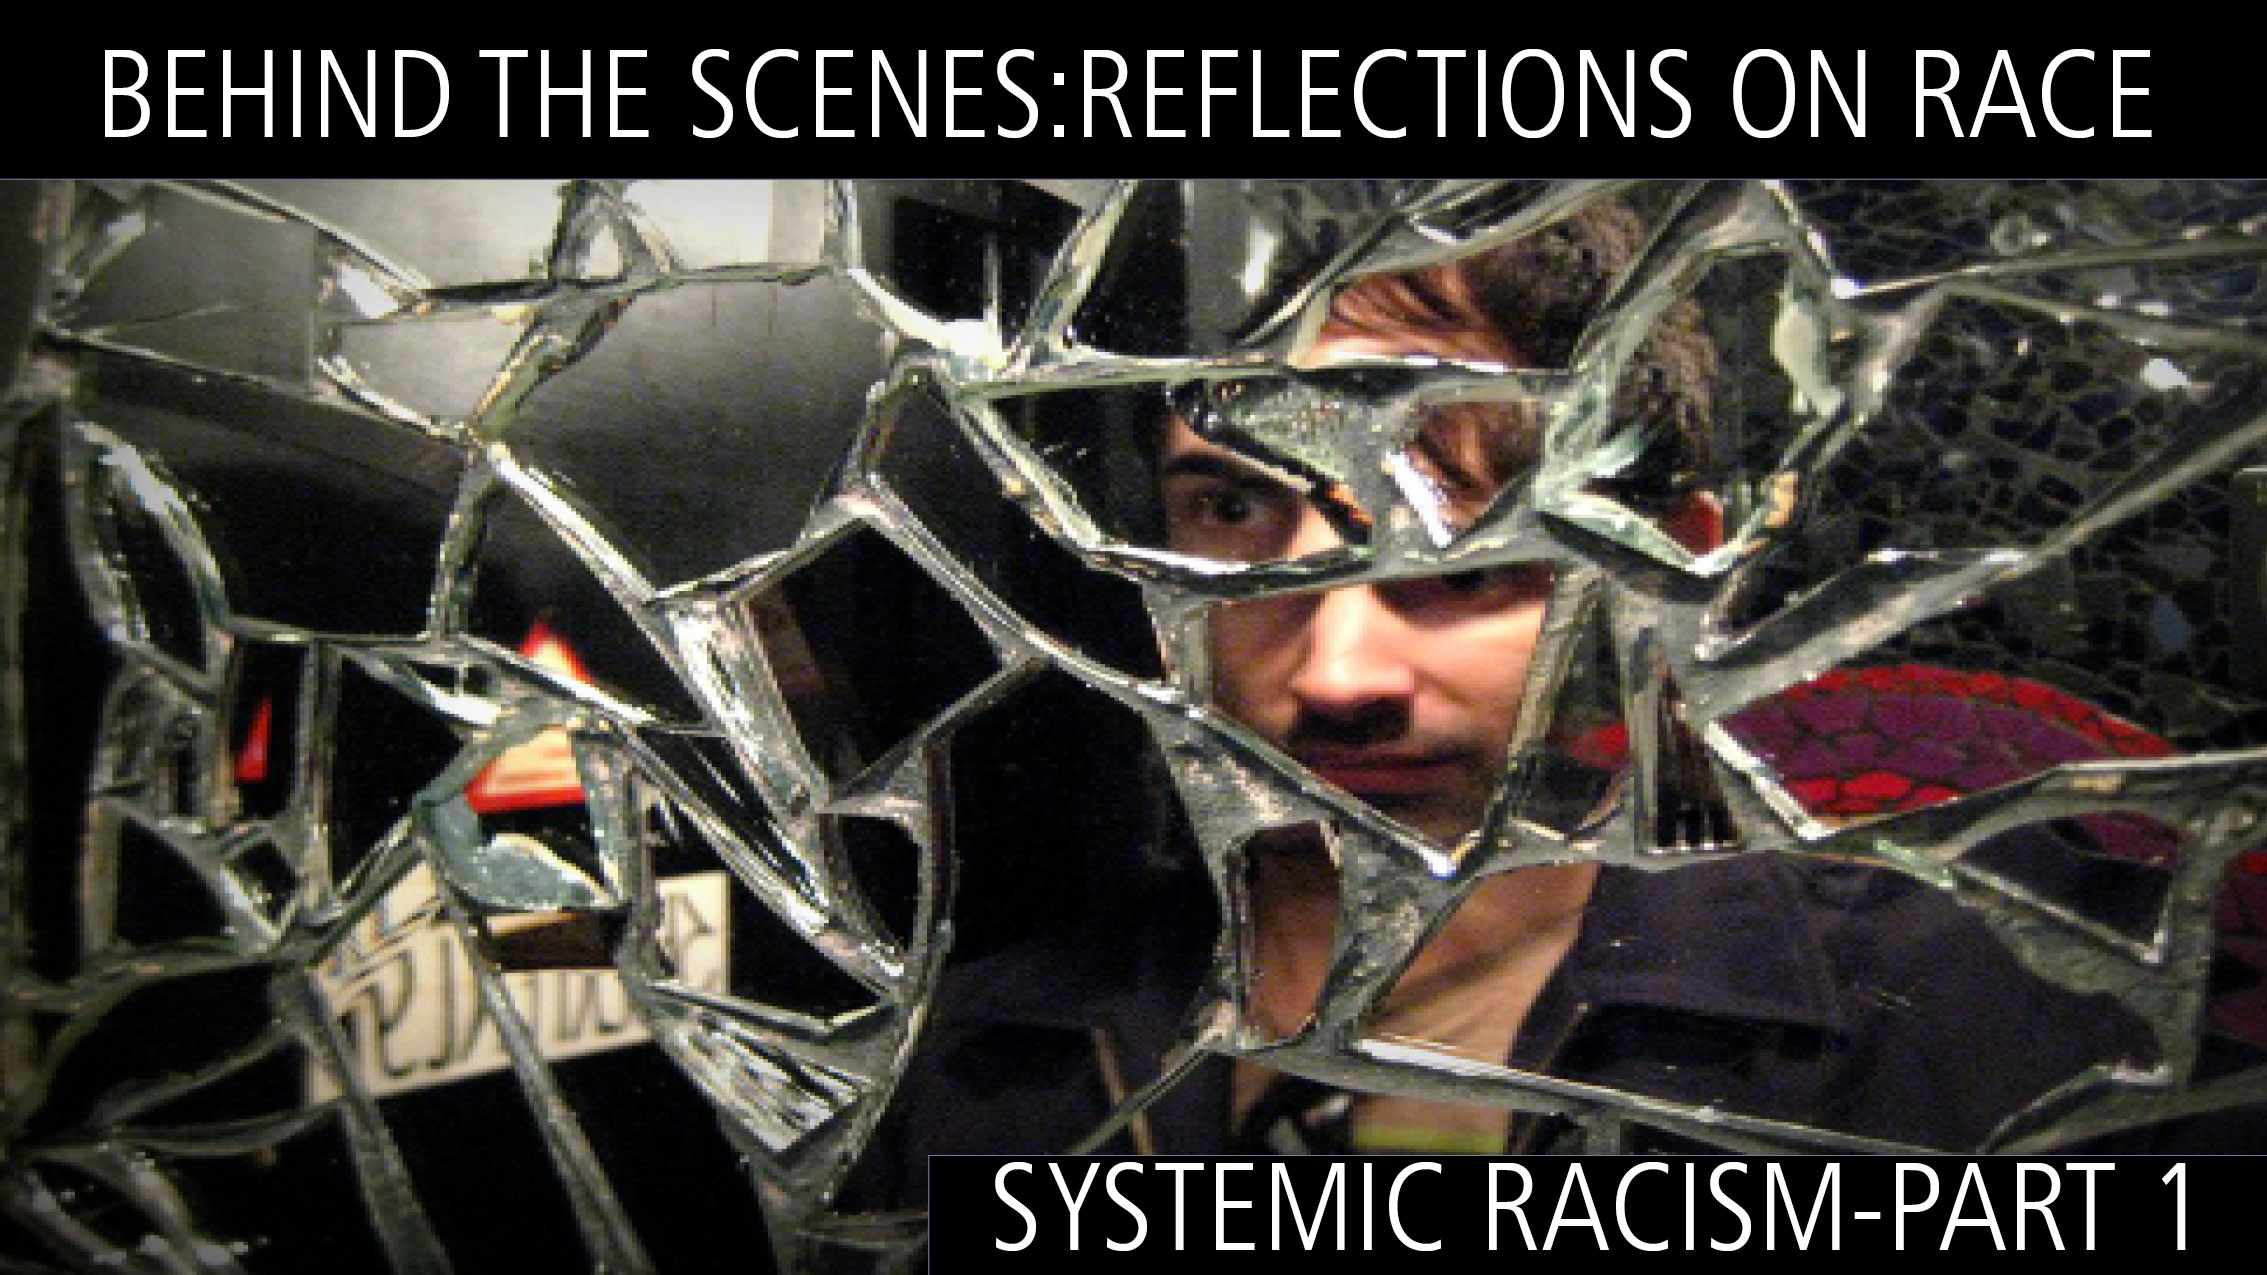 Reflections on Race: Systemic Racism- Part 1